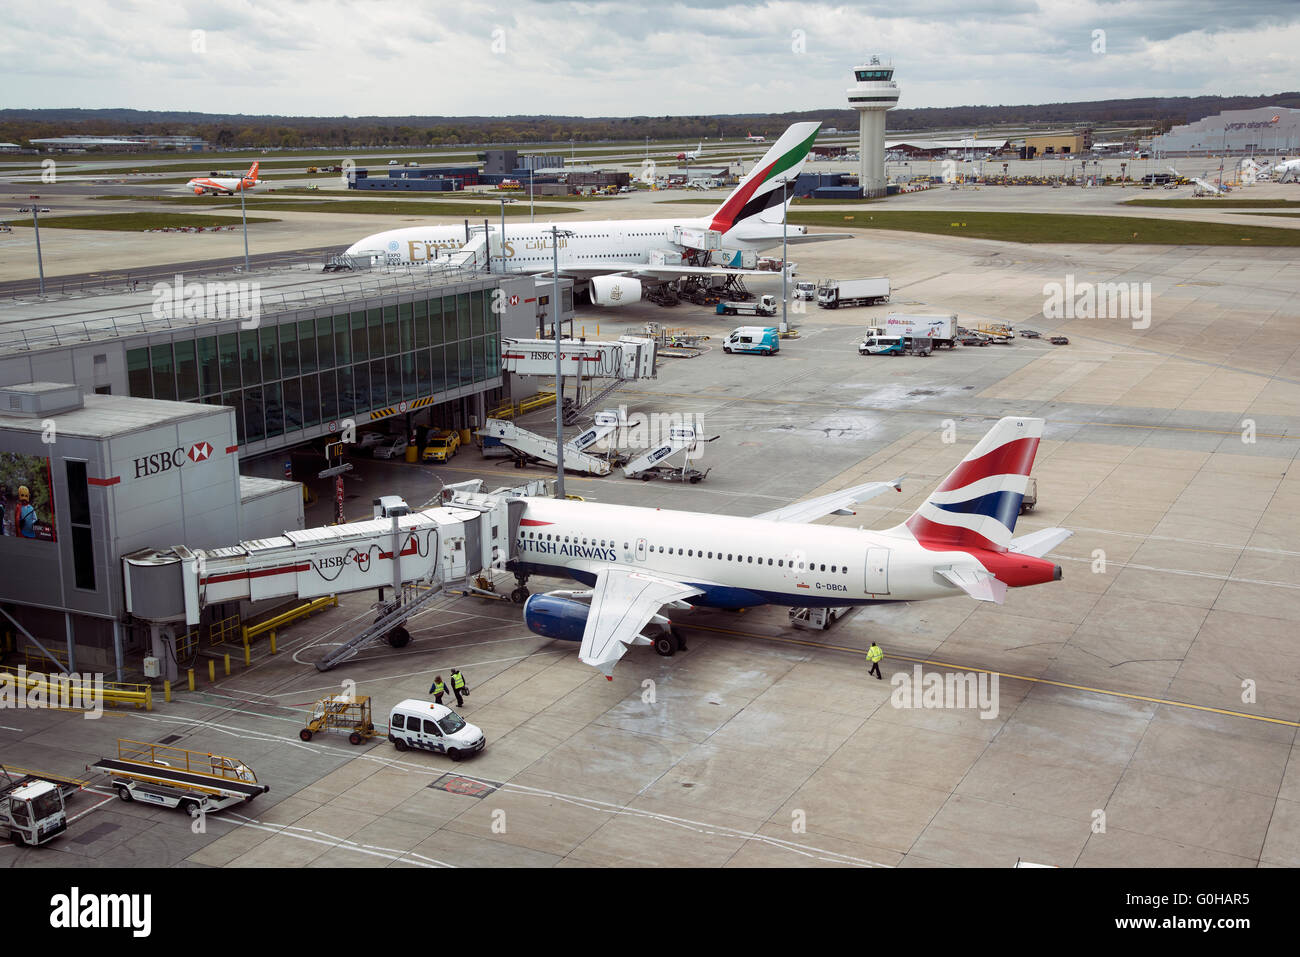 London Gatwick Airport with passenger jets on the jetway - Stock Image